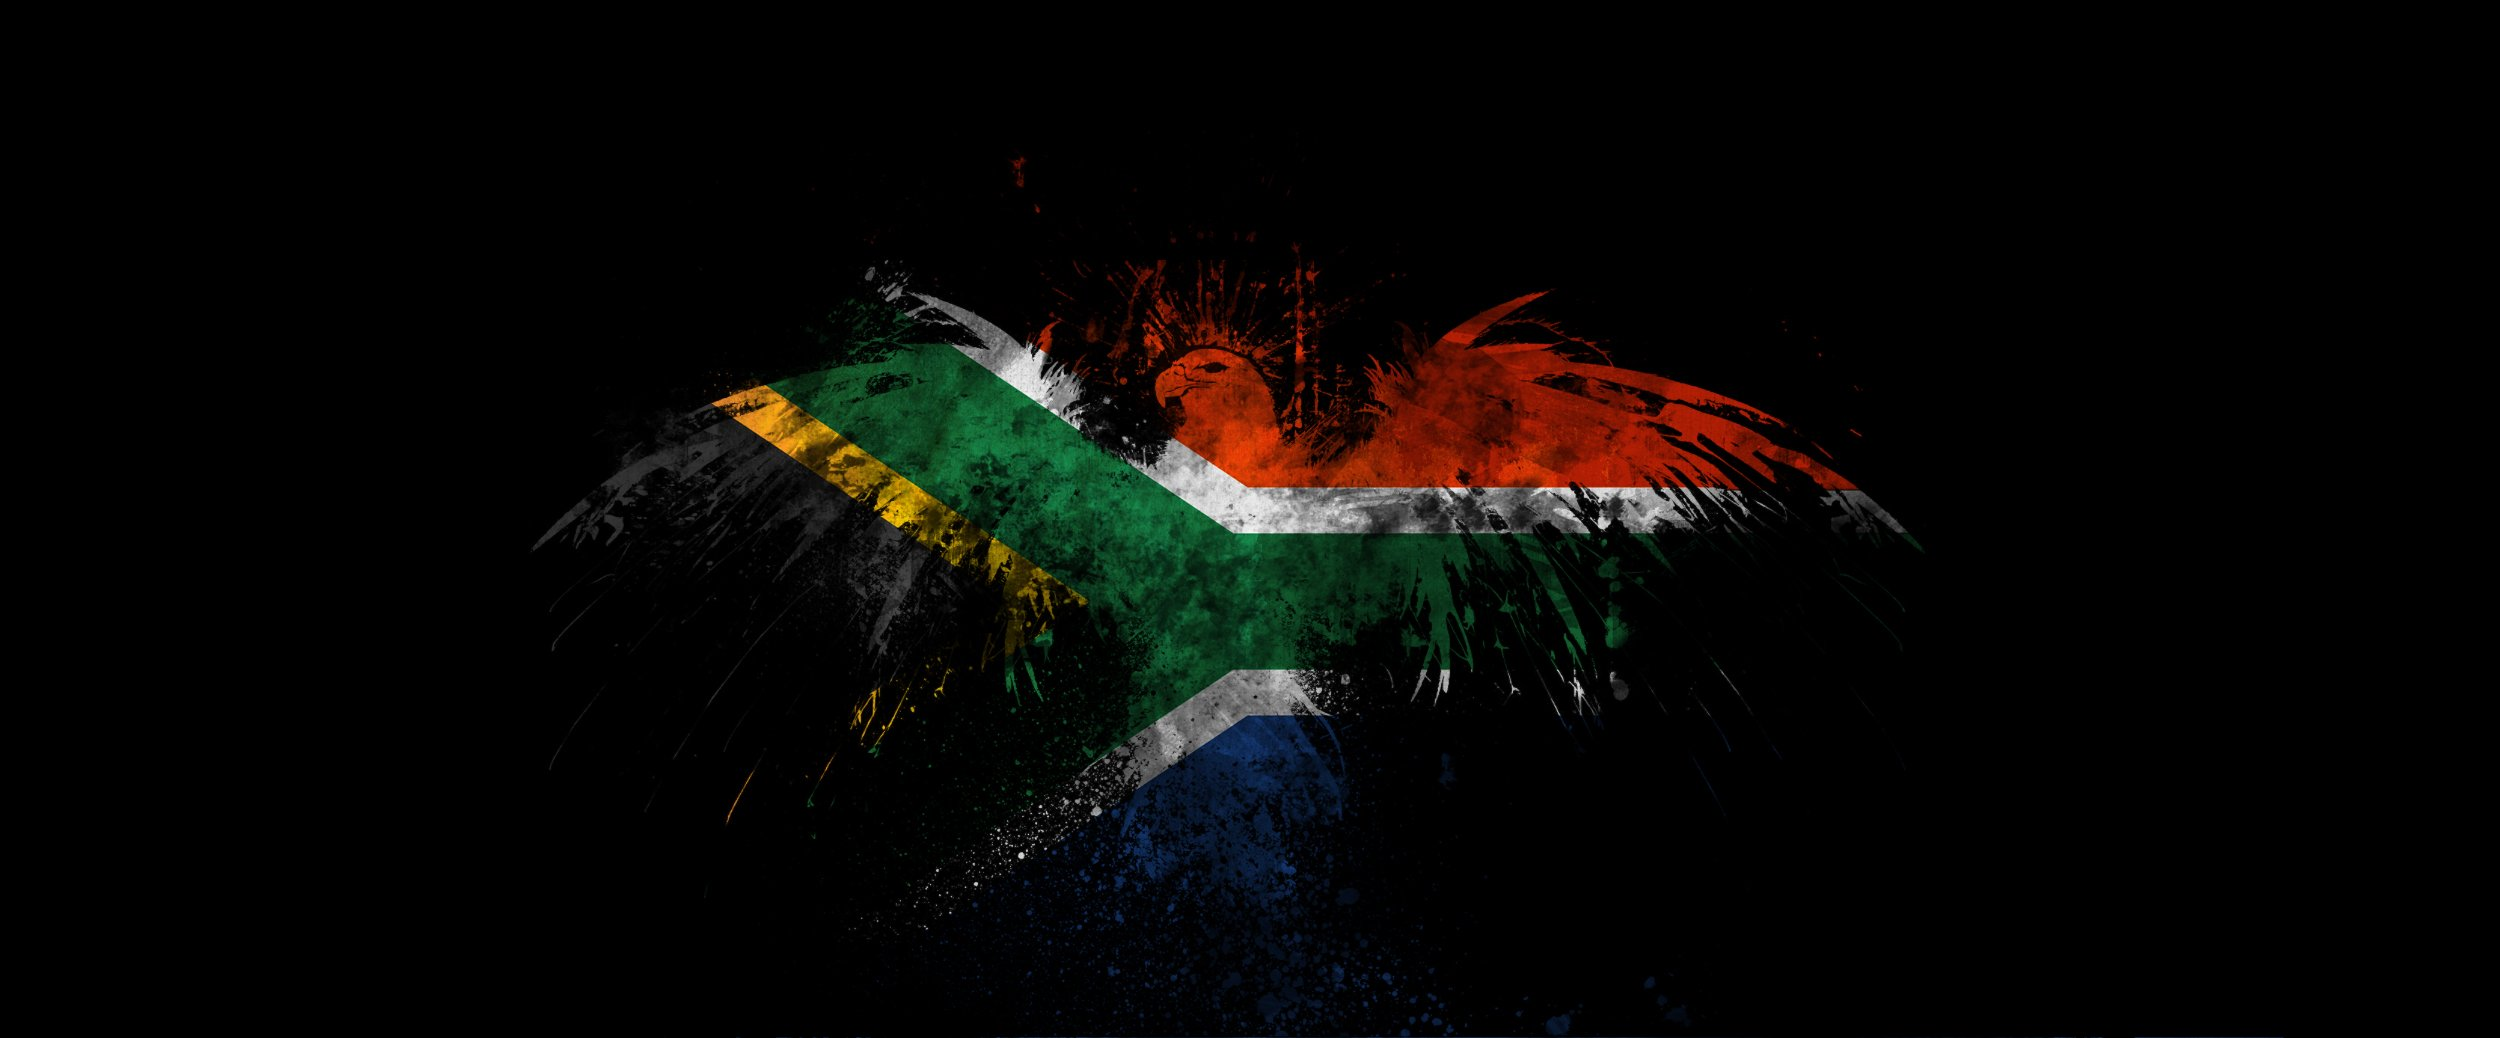 south african flag wallpaper - photo #27